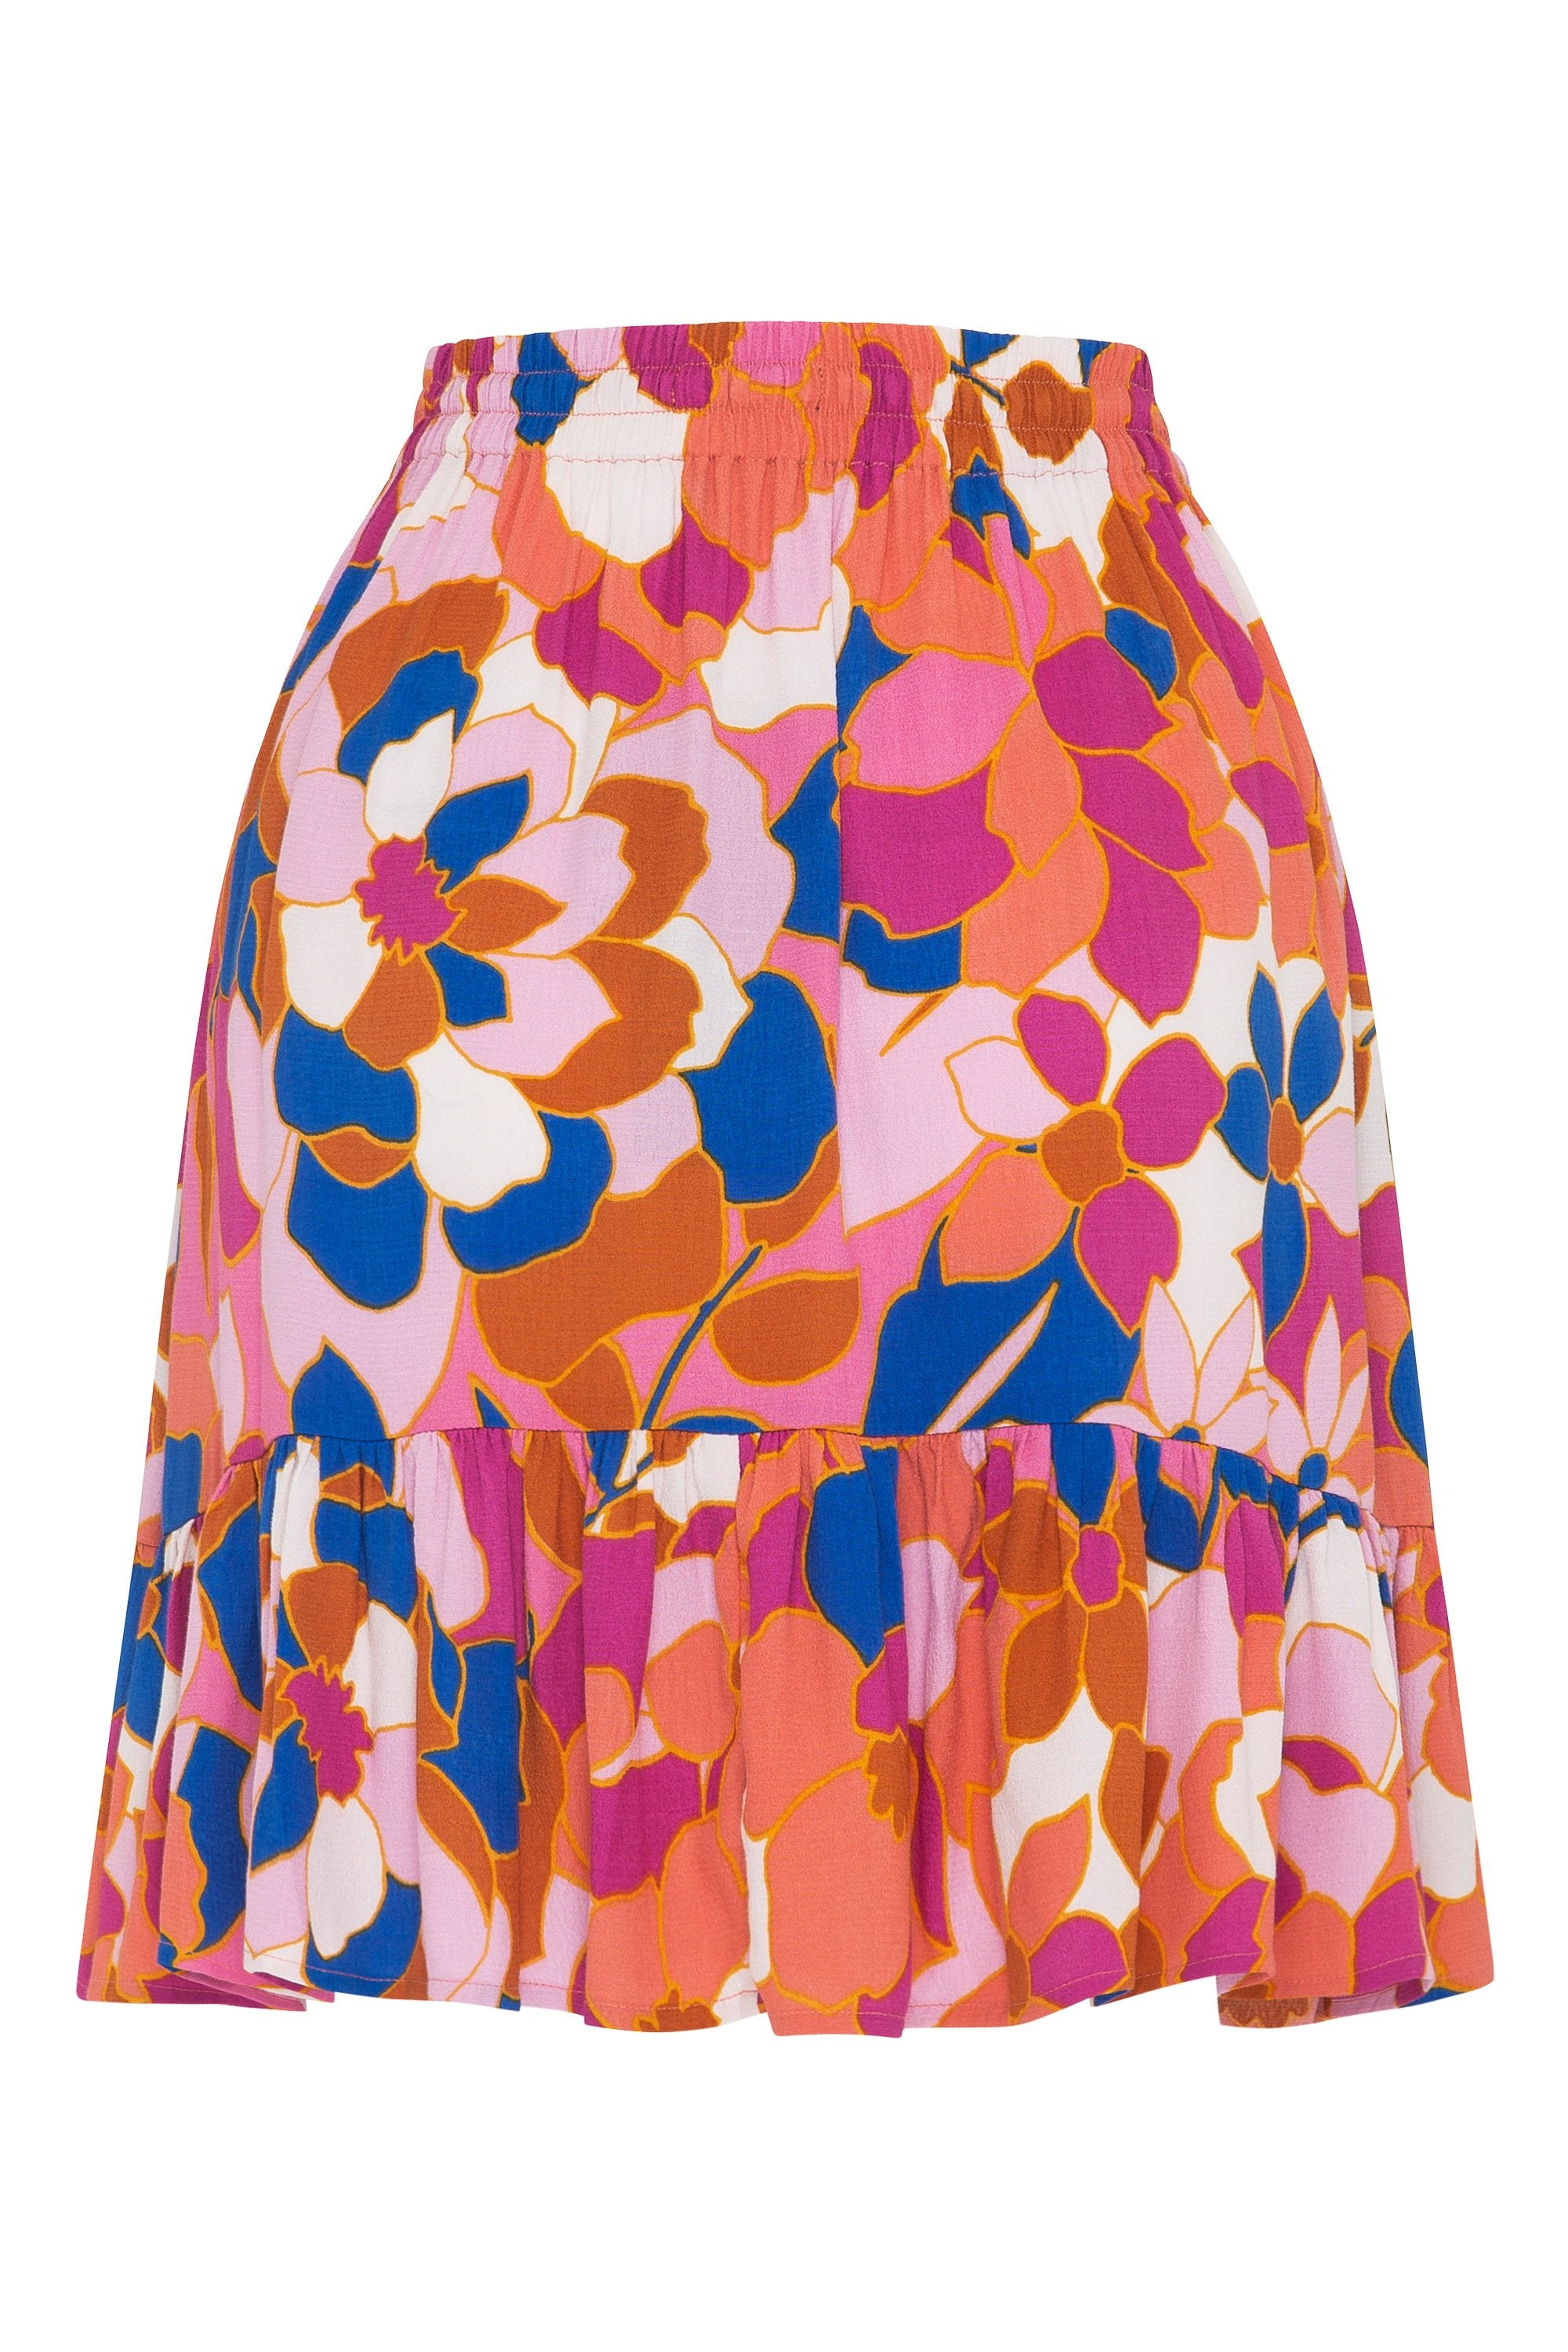 Velvie Skirt In Mosaic